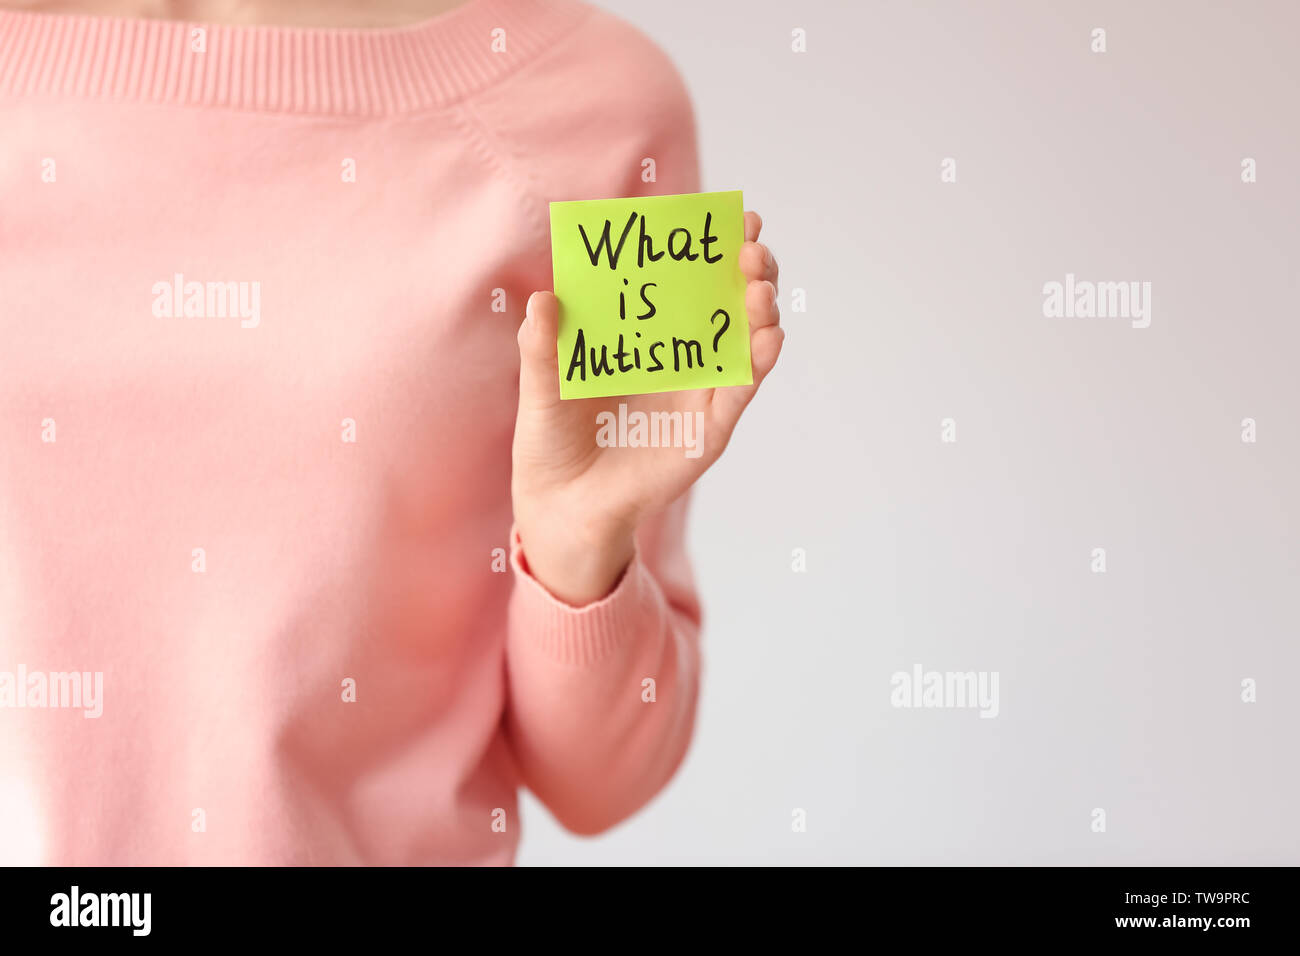 Woman holding note with phrase 'What is autism?' on light background - Stock Image